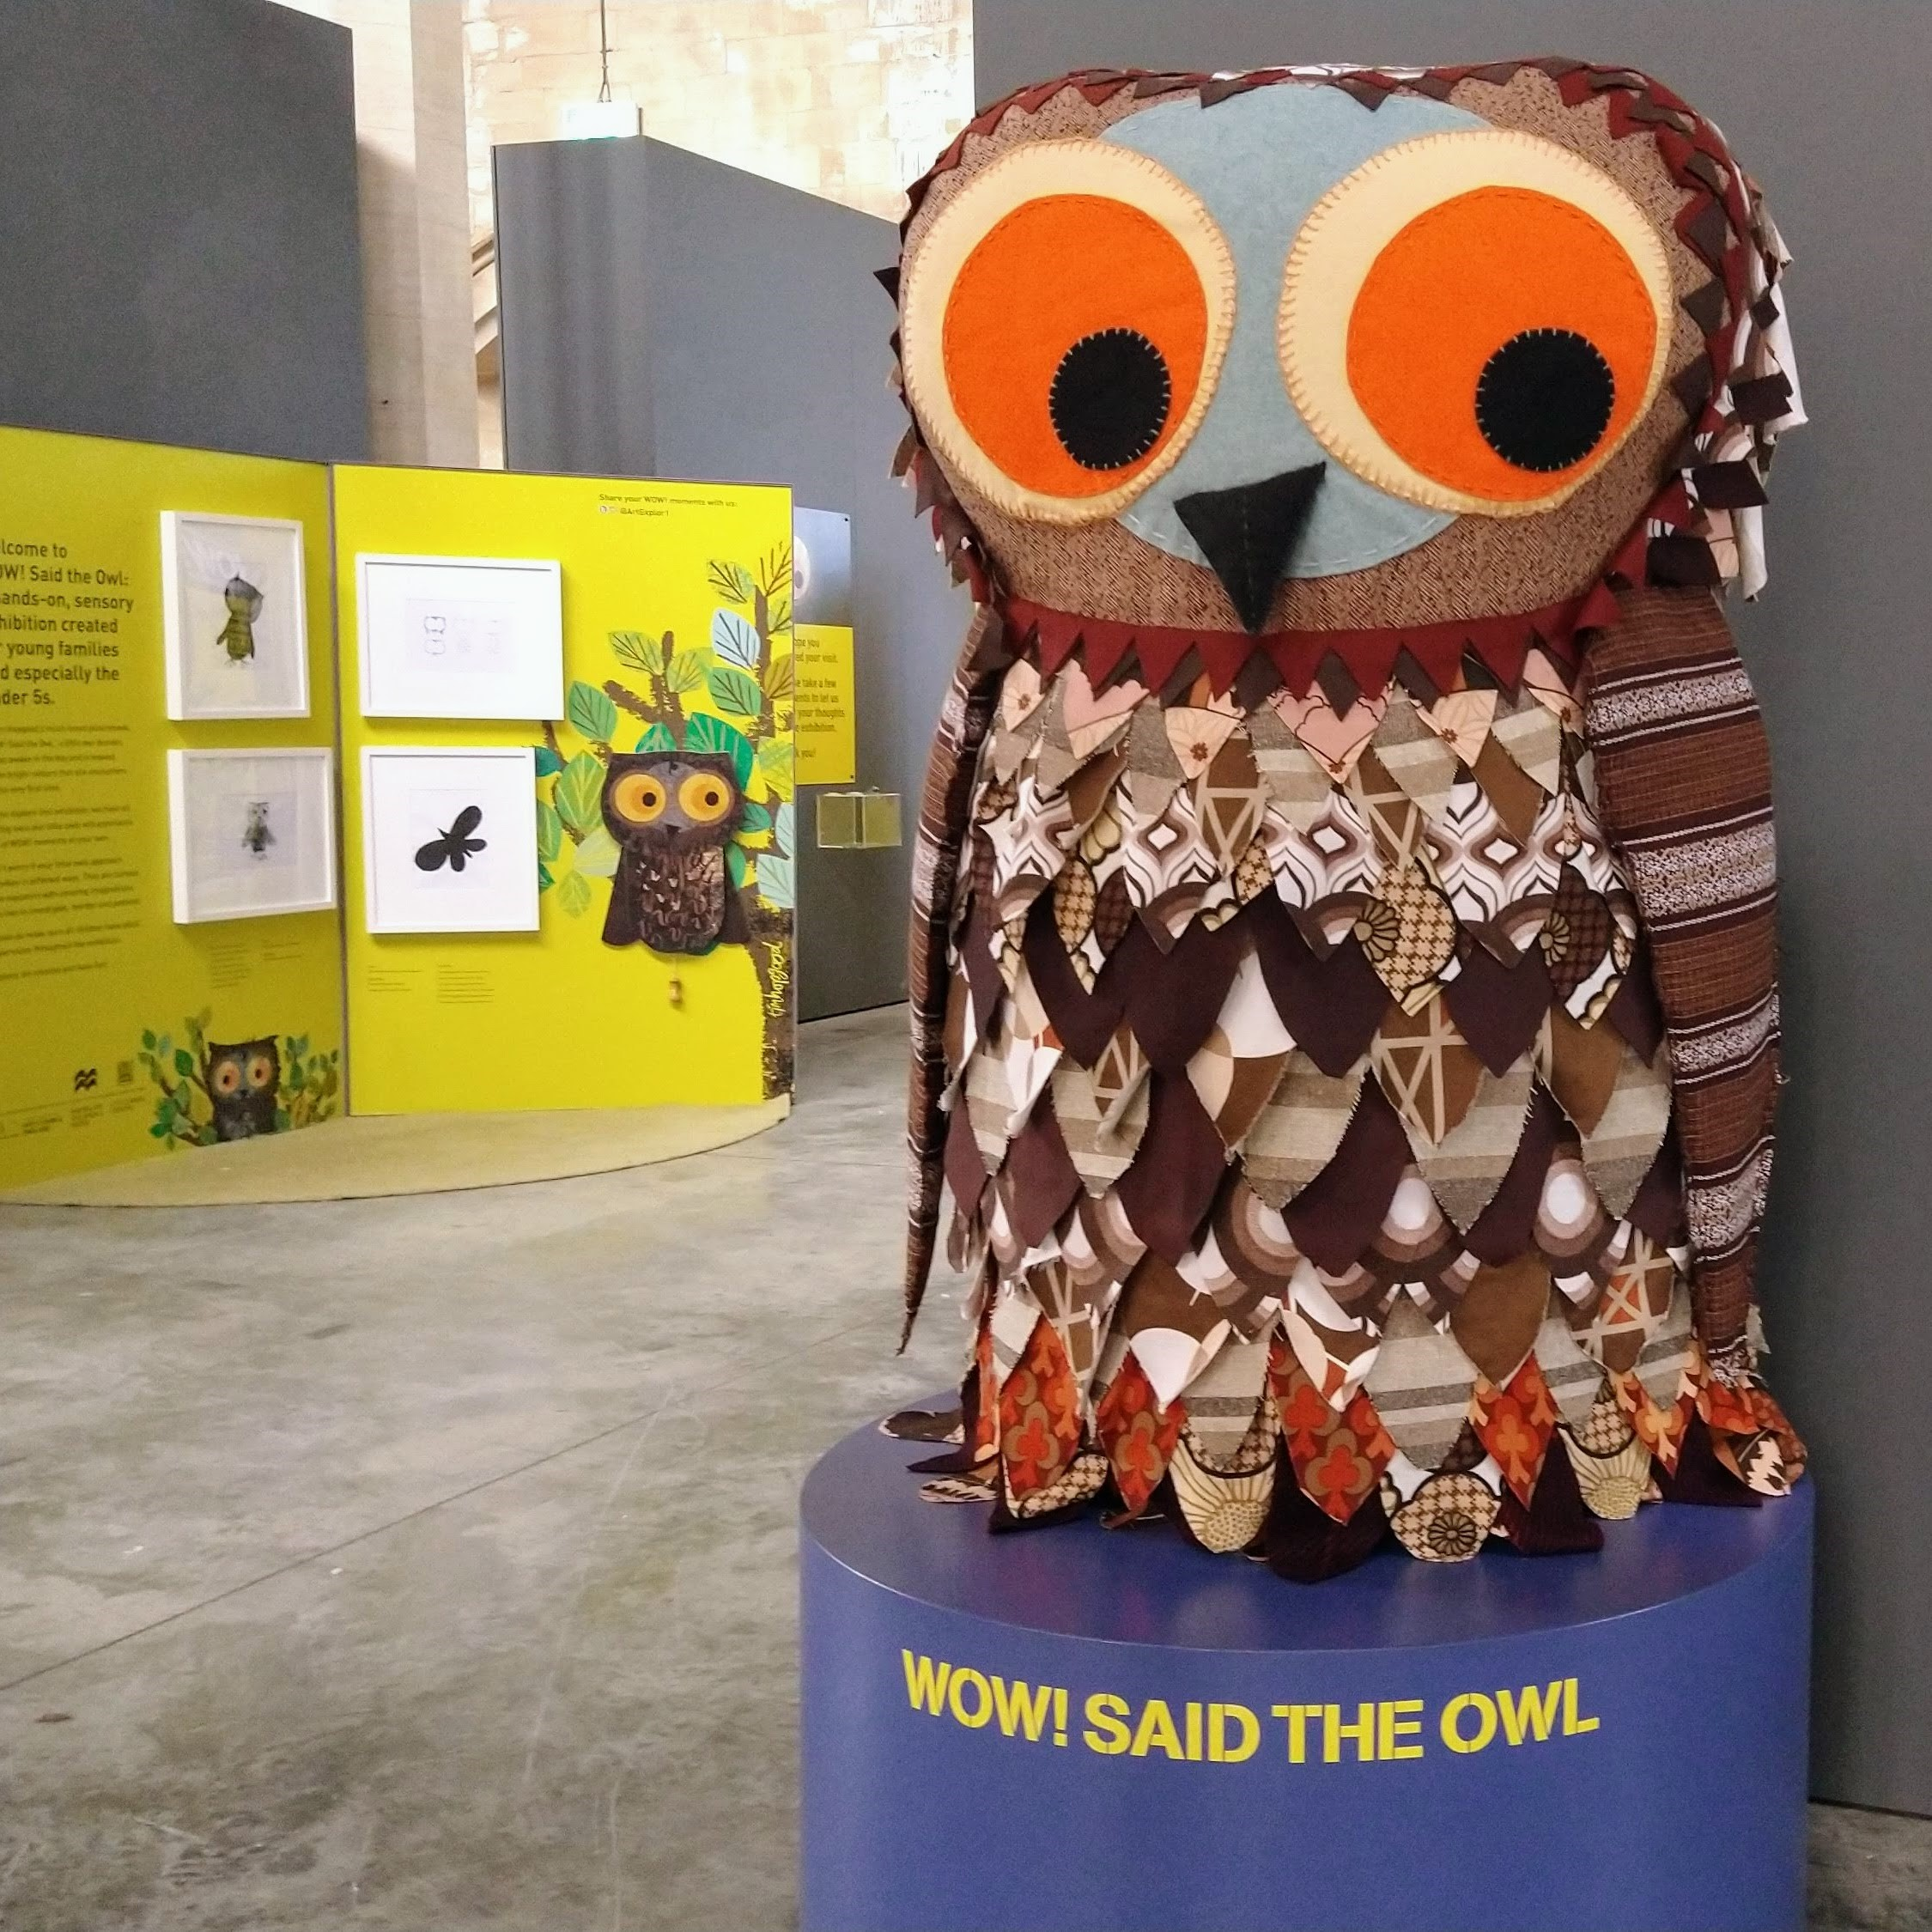 WOW! Said the Owl exhibition